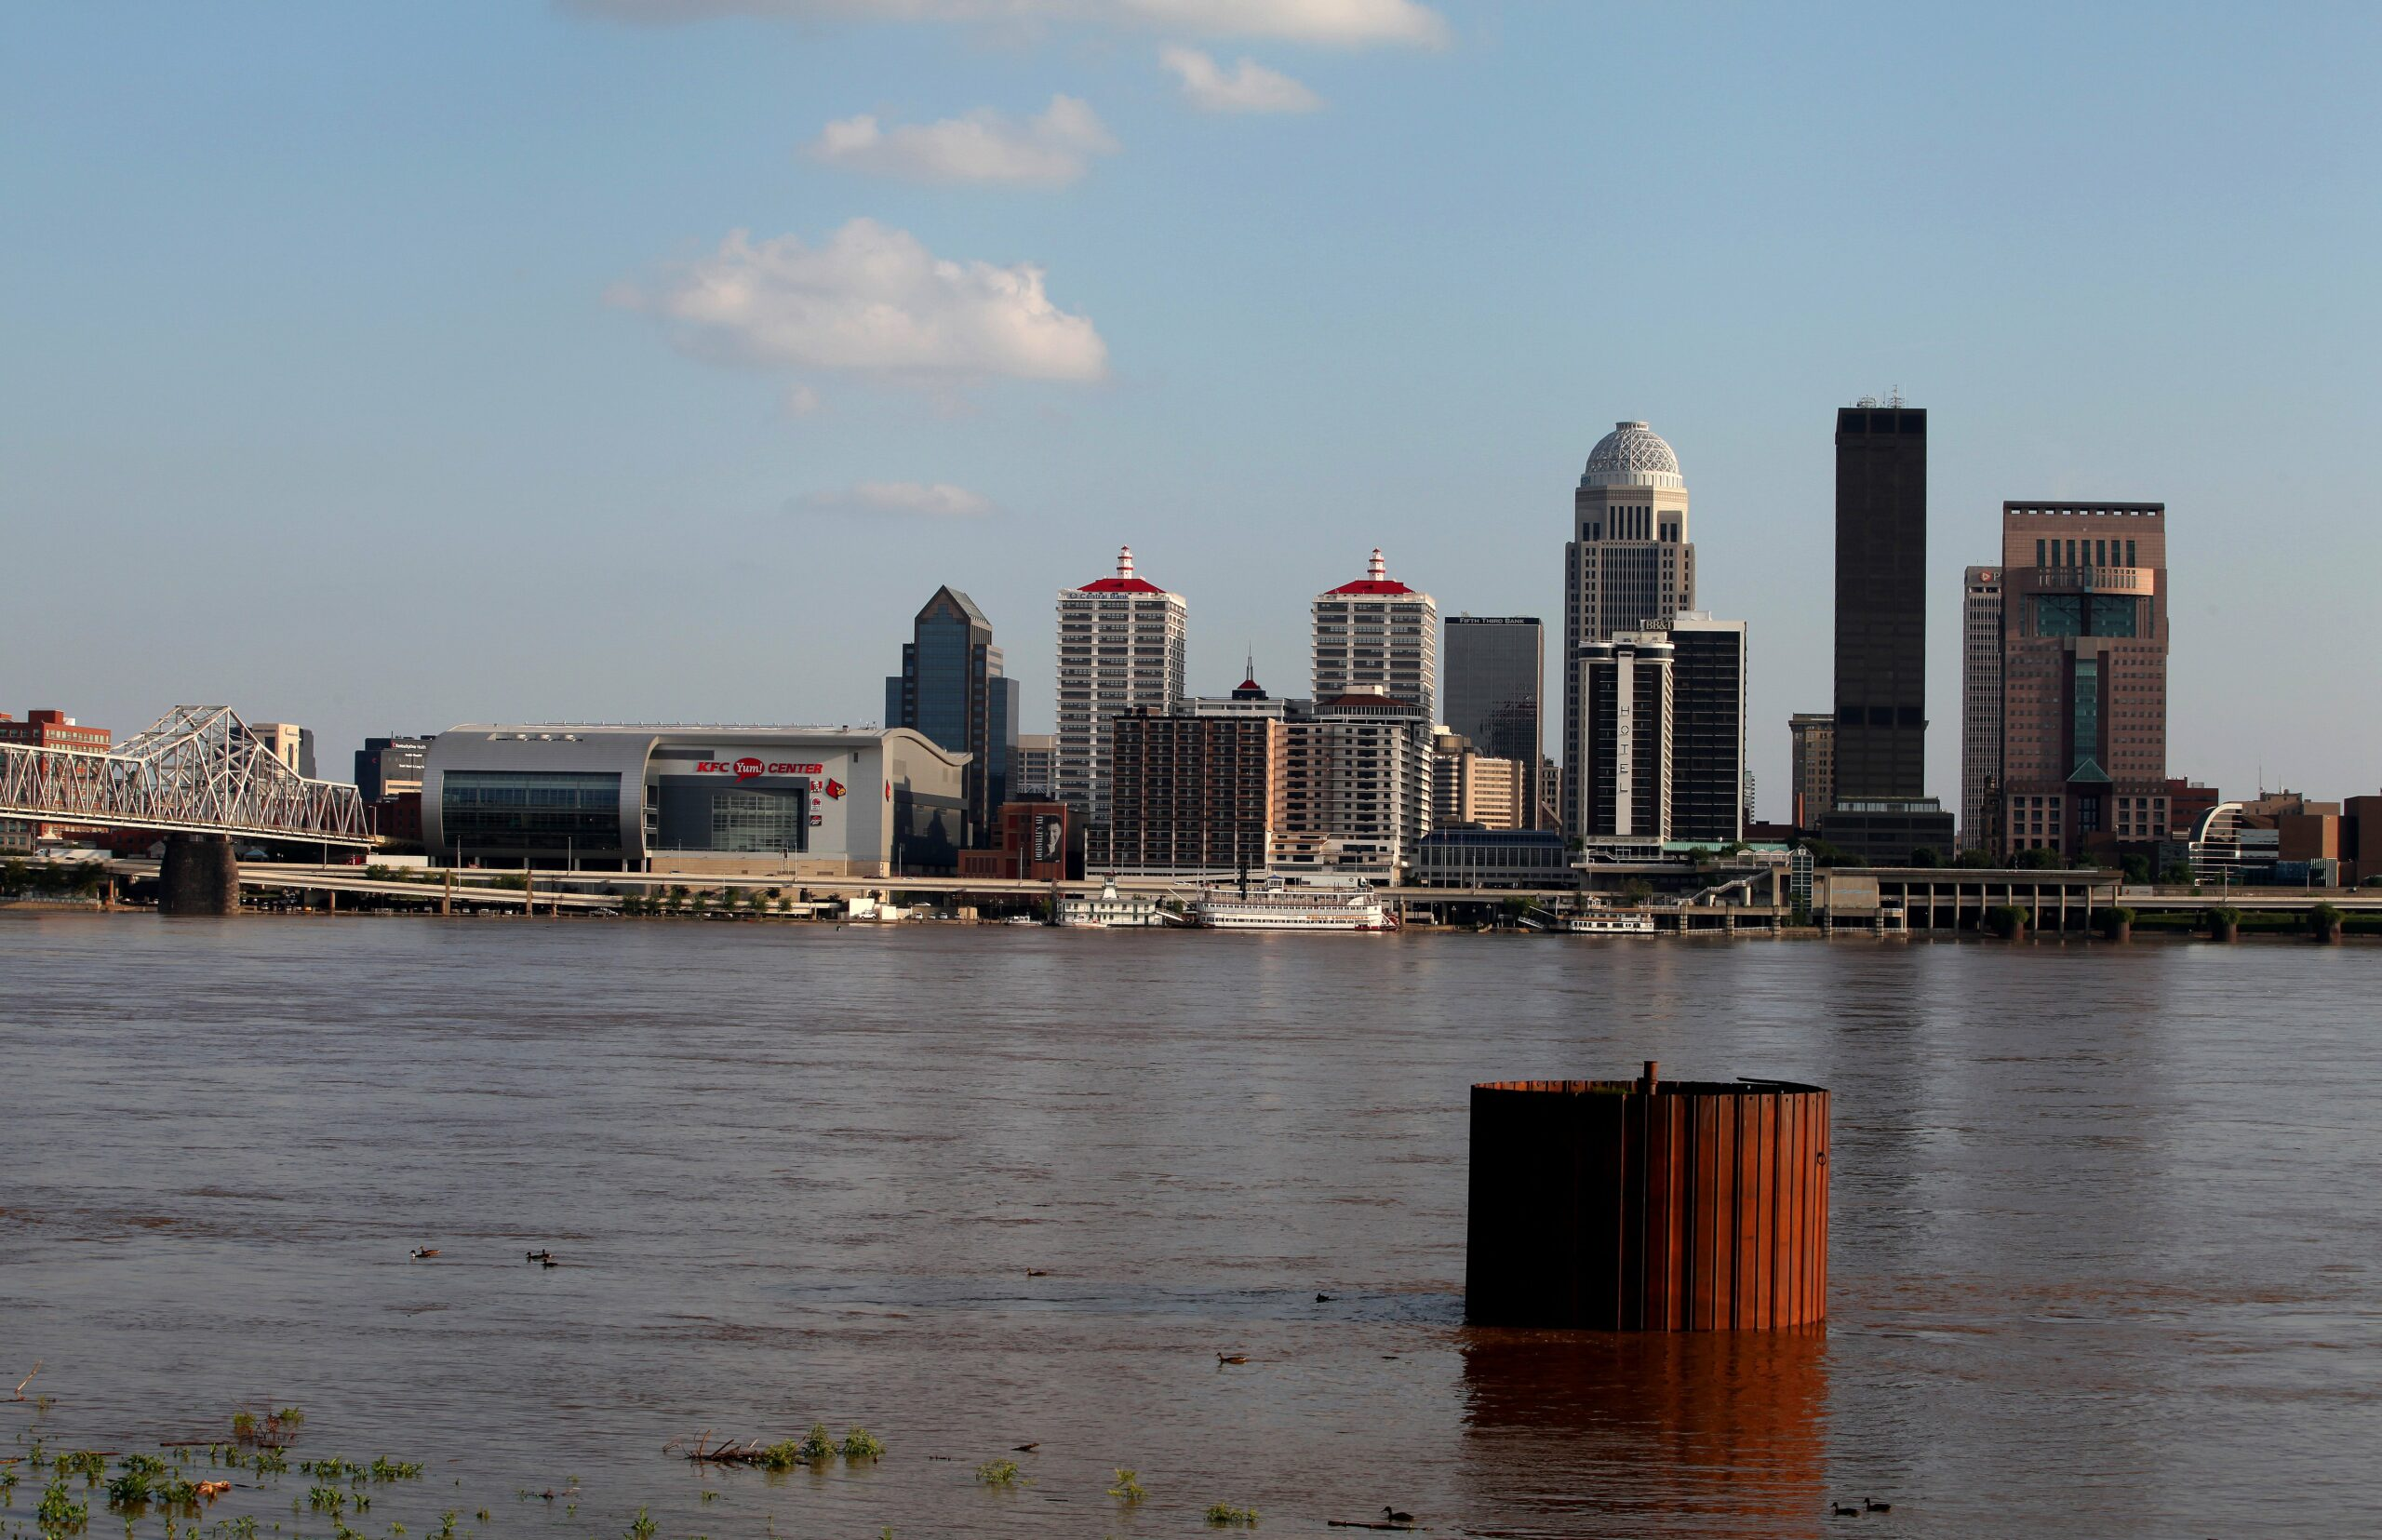 Louisville, Kentucky skyline as photographed from the Ohio River Greenway on July 16, 2015 in Clarksville, Indiana. Credit: Raymond Boyd/Getty Images